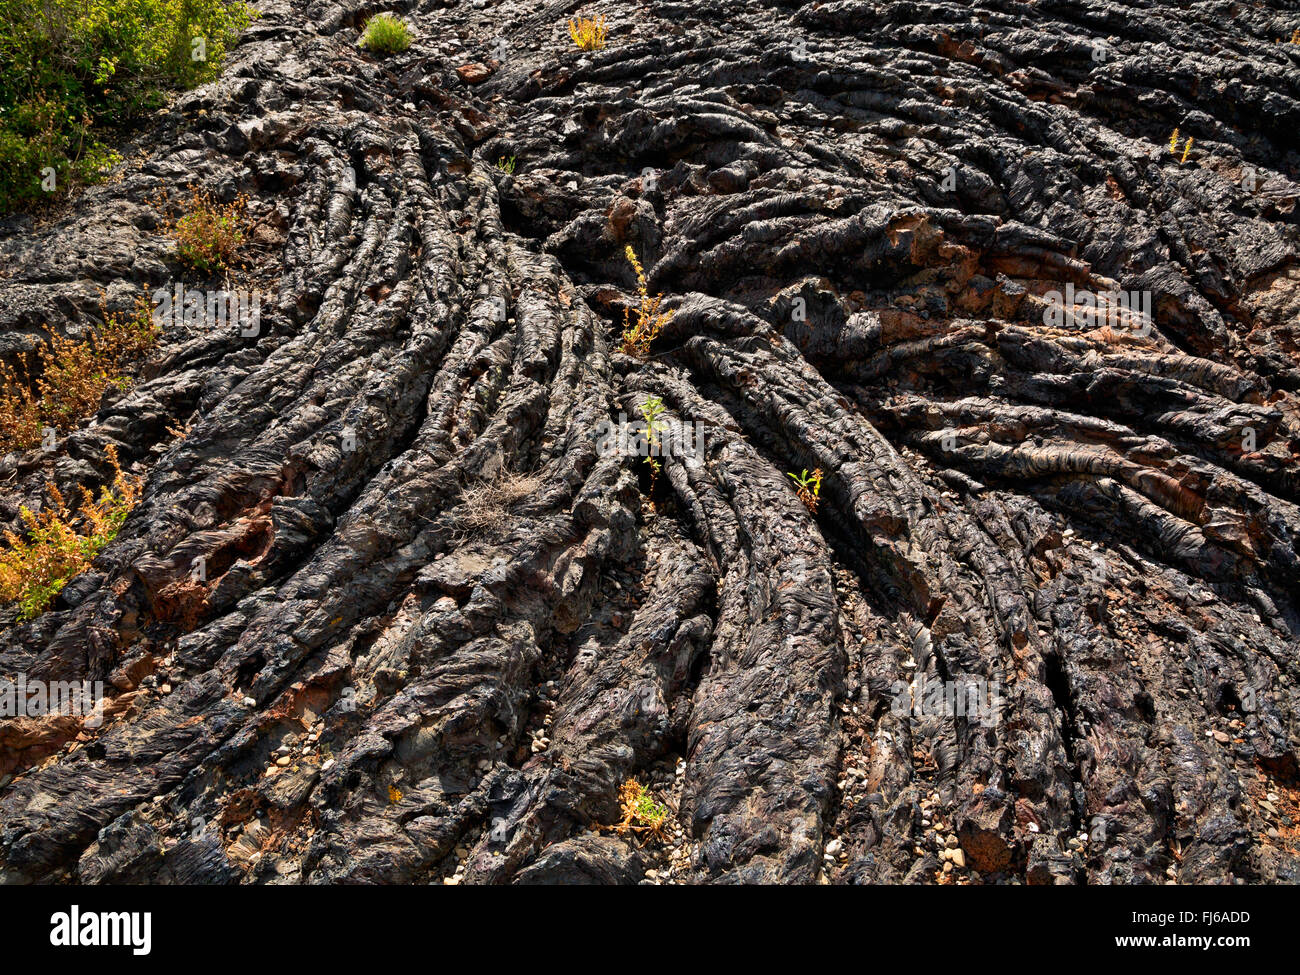 ID00480-00...IDAHO - Pahoehoe lava found along the North Crater Trail in Craters of the Moon National Monument and - Stock Image